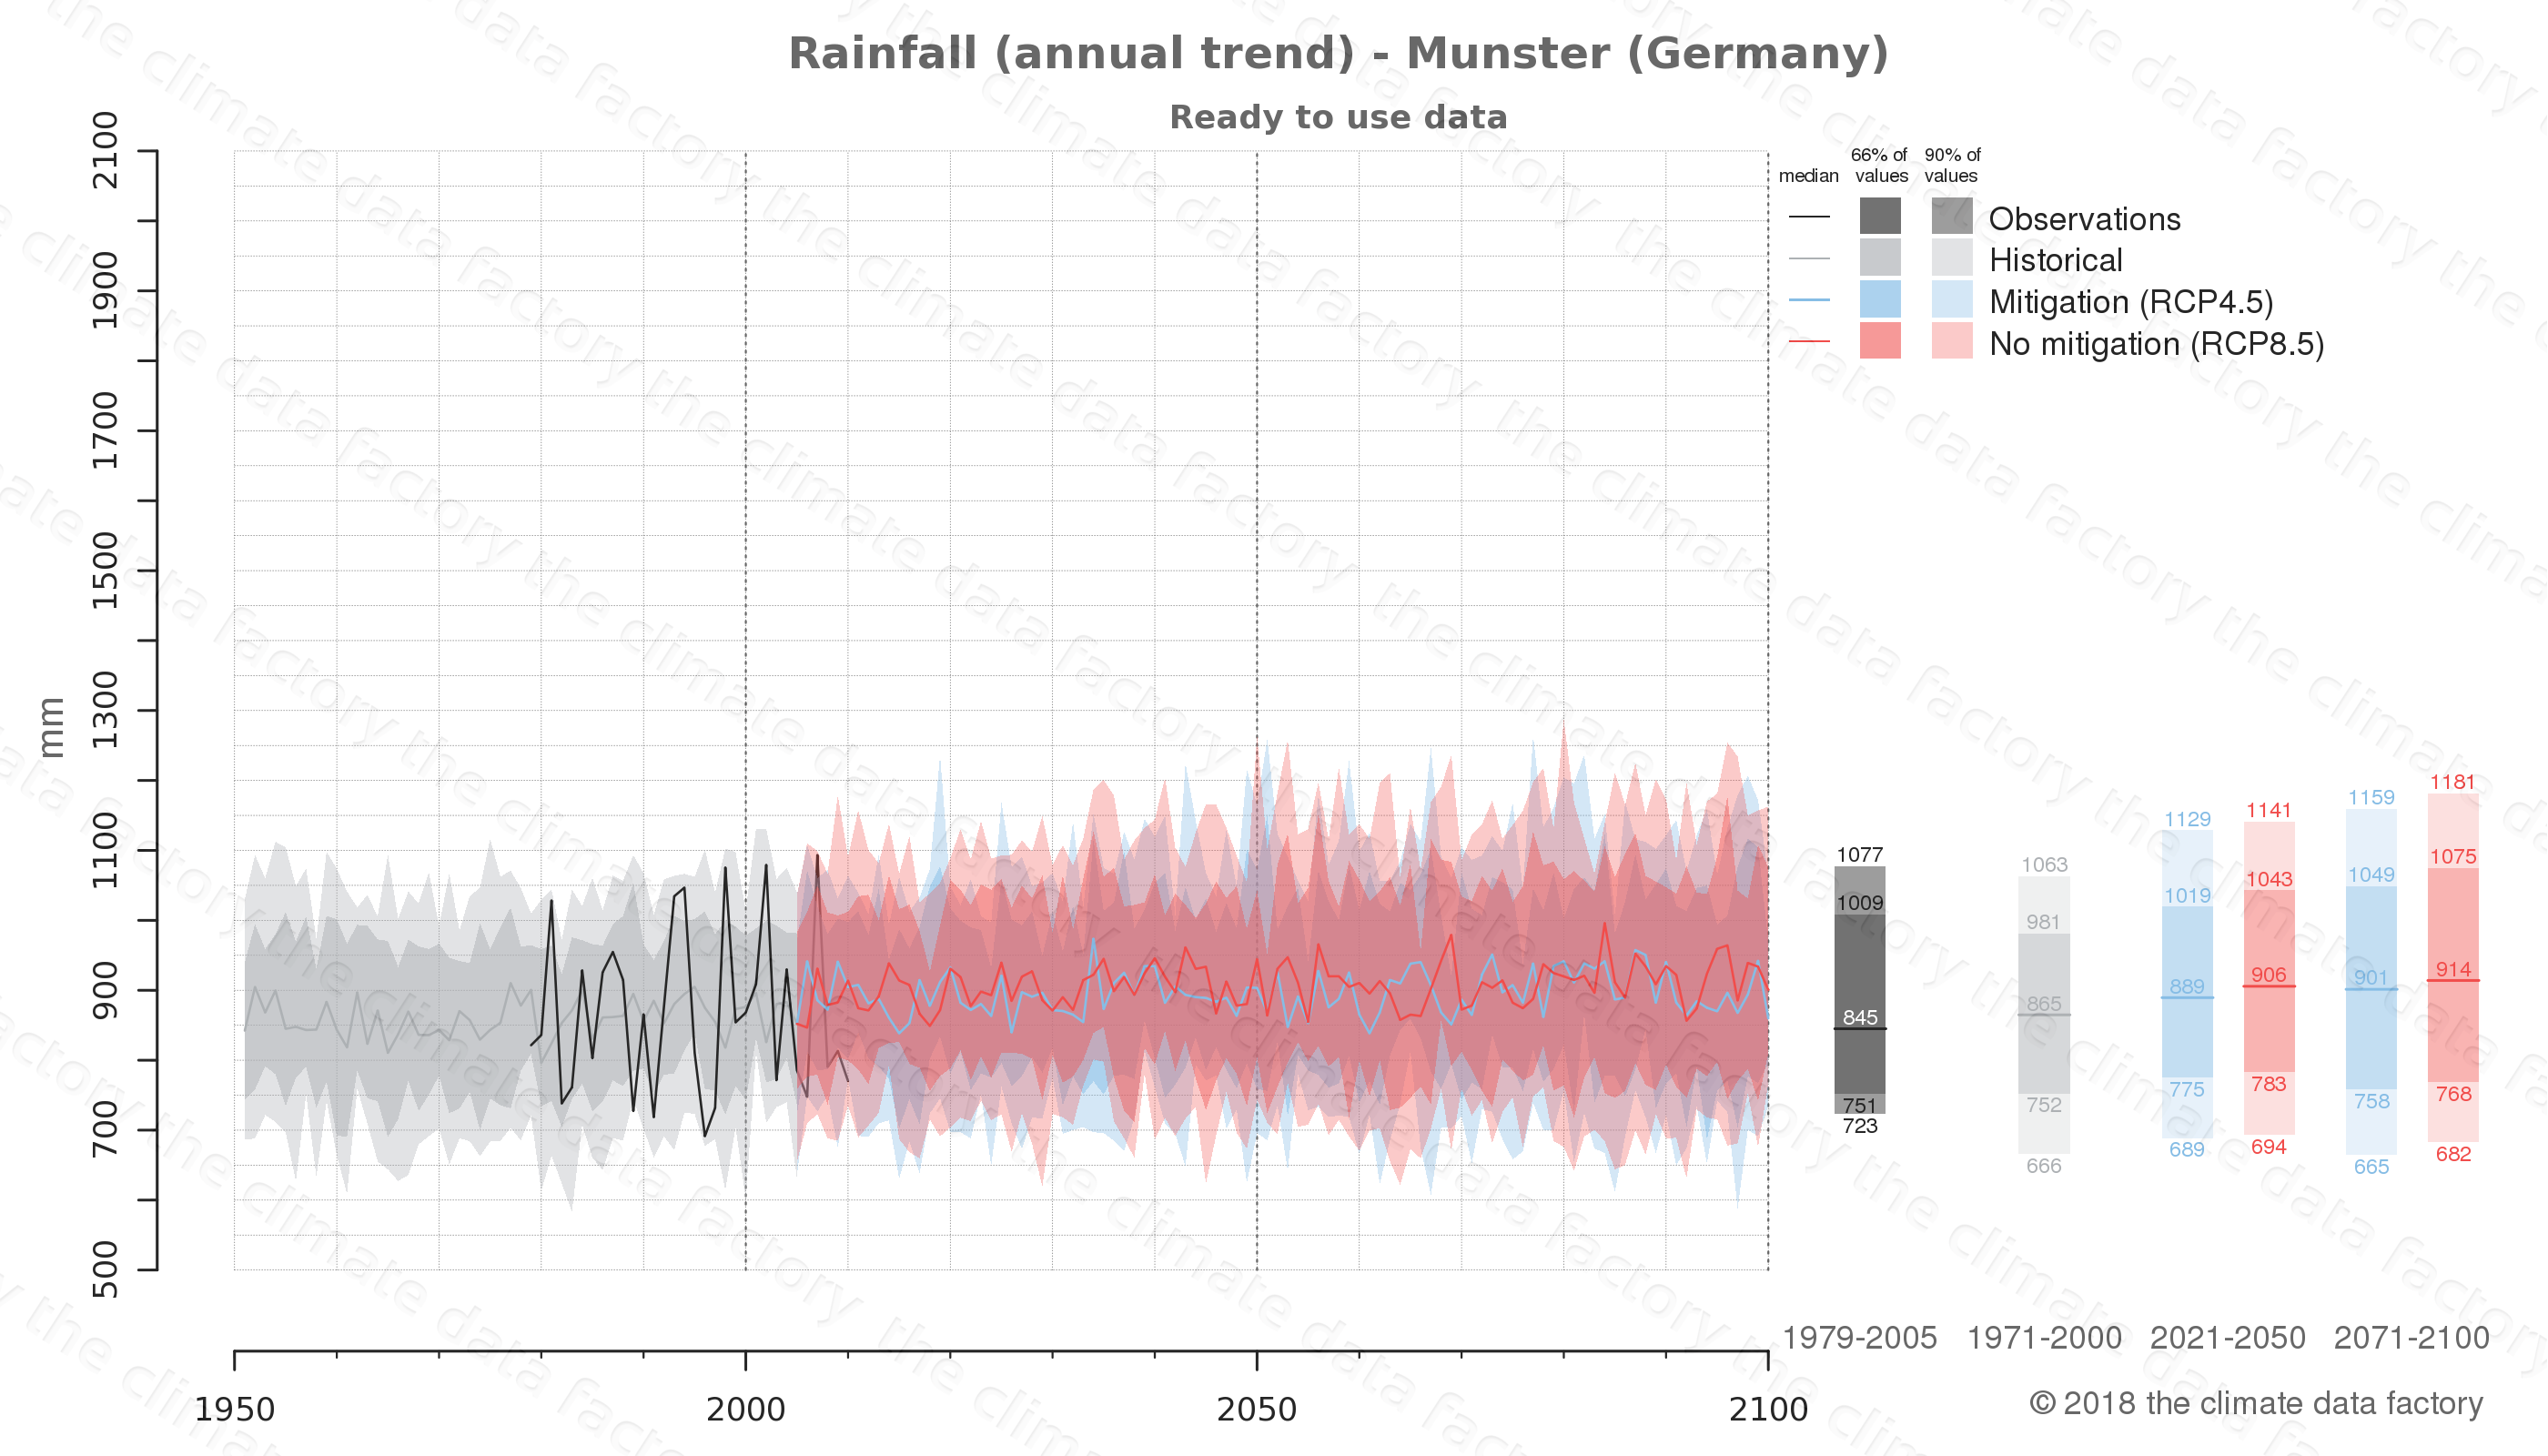 climate change data policy adaptation climate graph city data rainfall munster germany